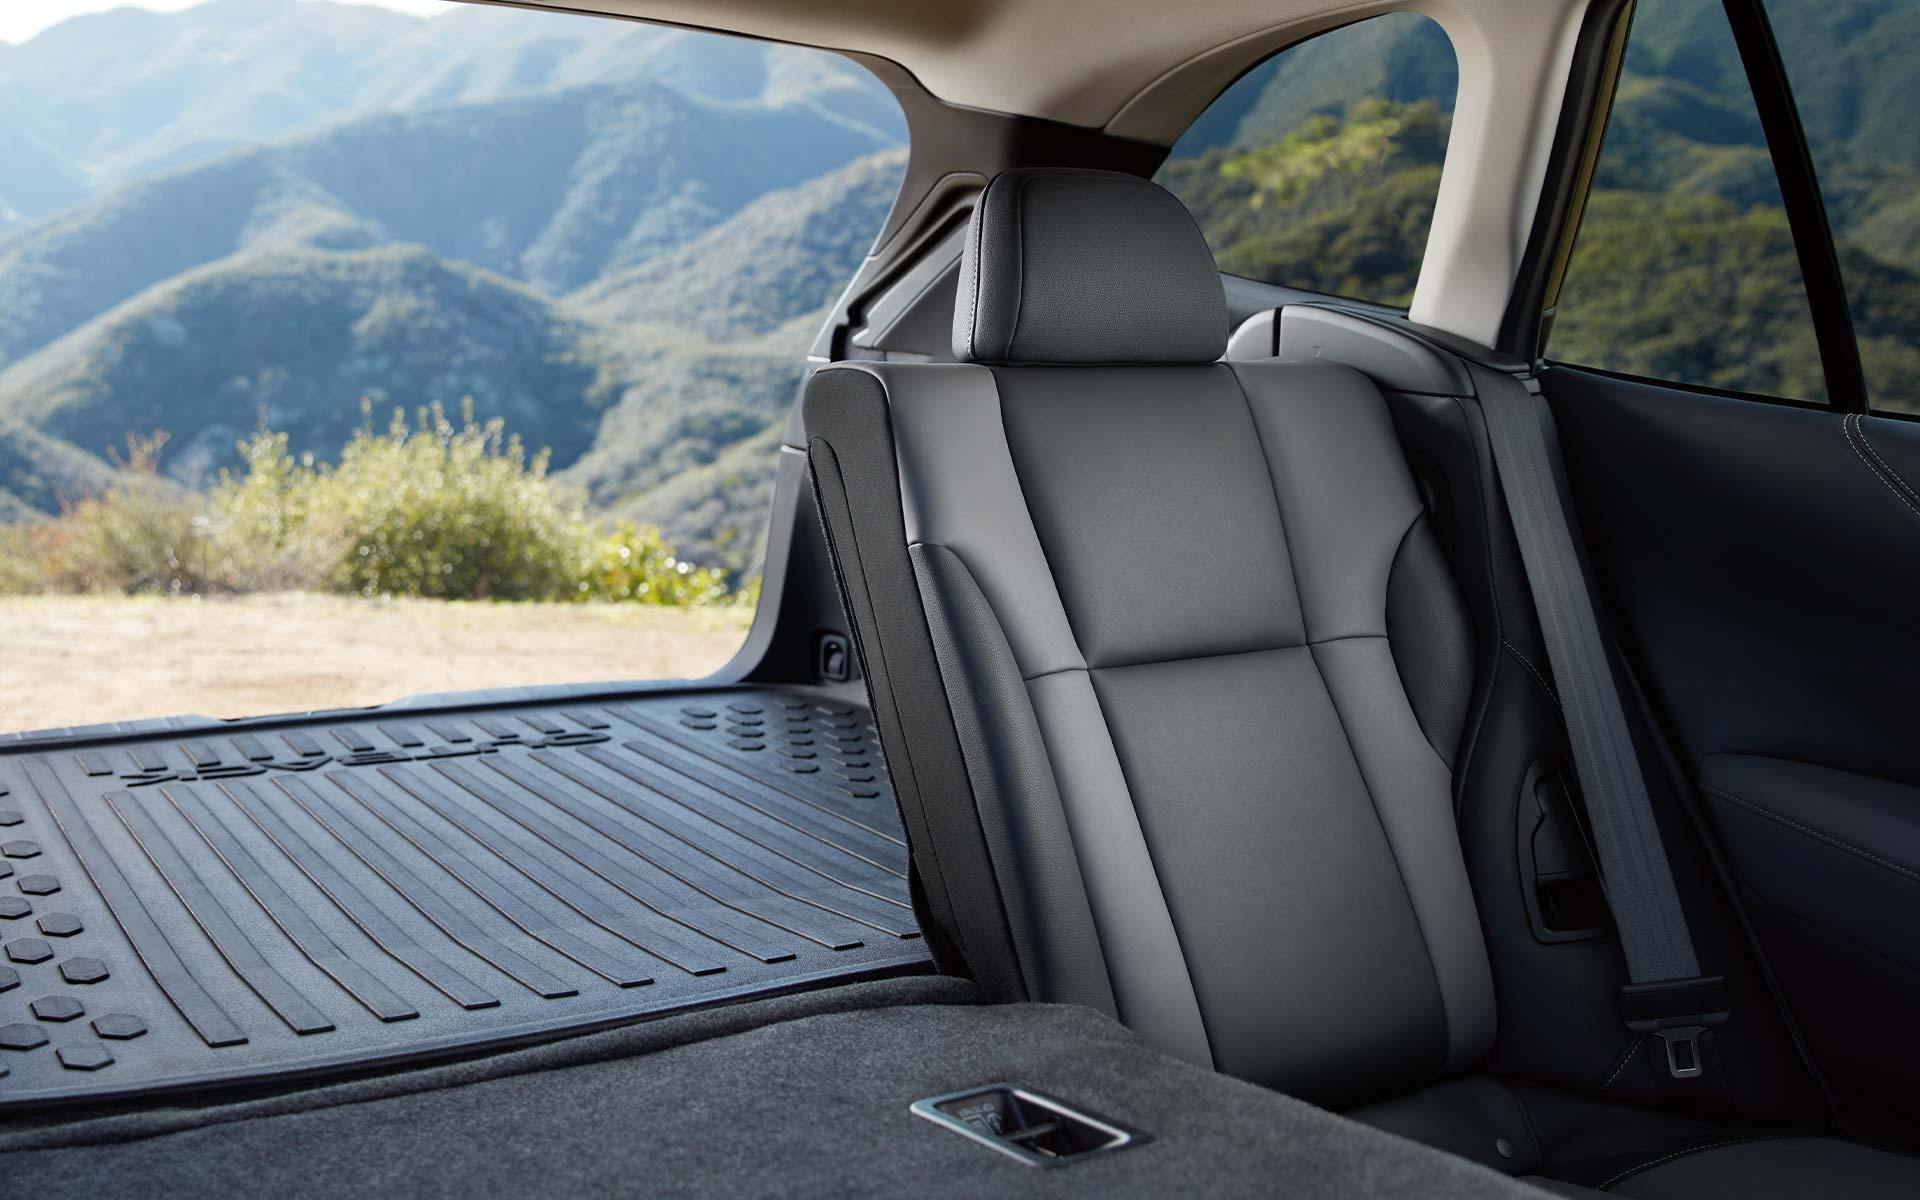 A view of the rear seat of the 2022 Subaru Onyx Edition XT showing the two-tone StarTex interior.